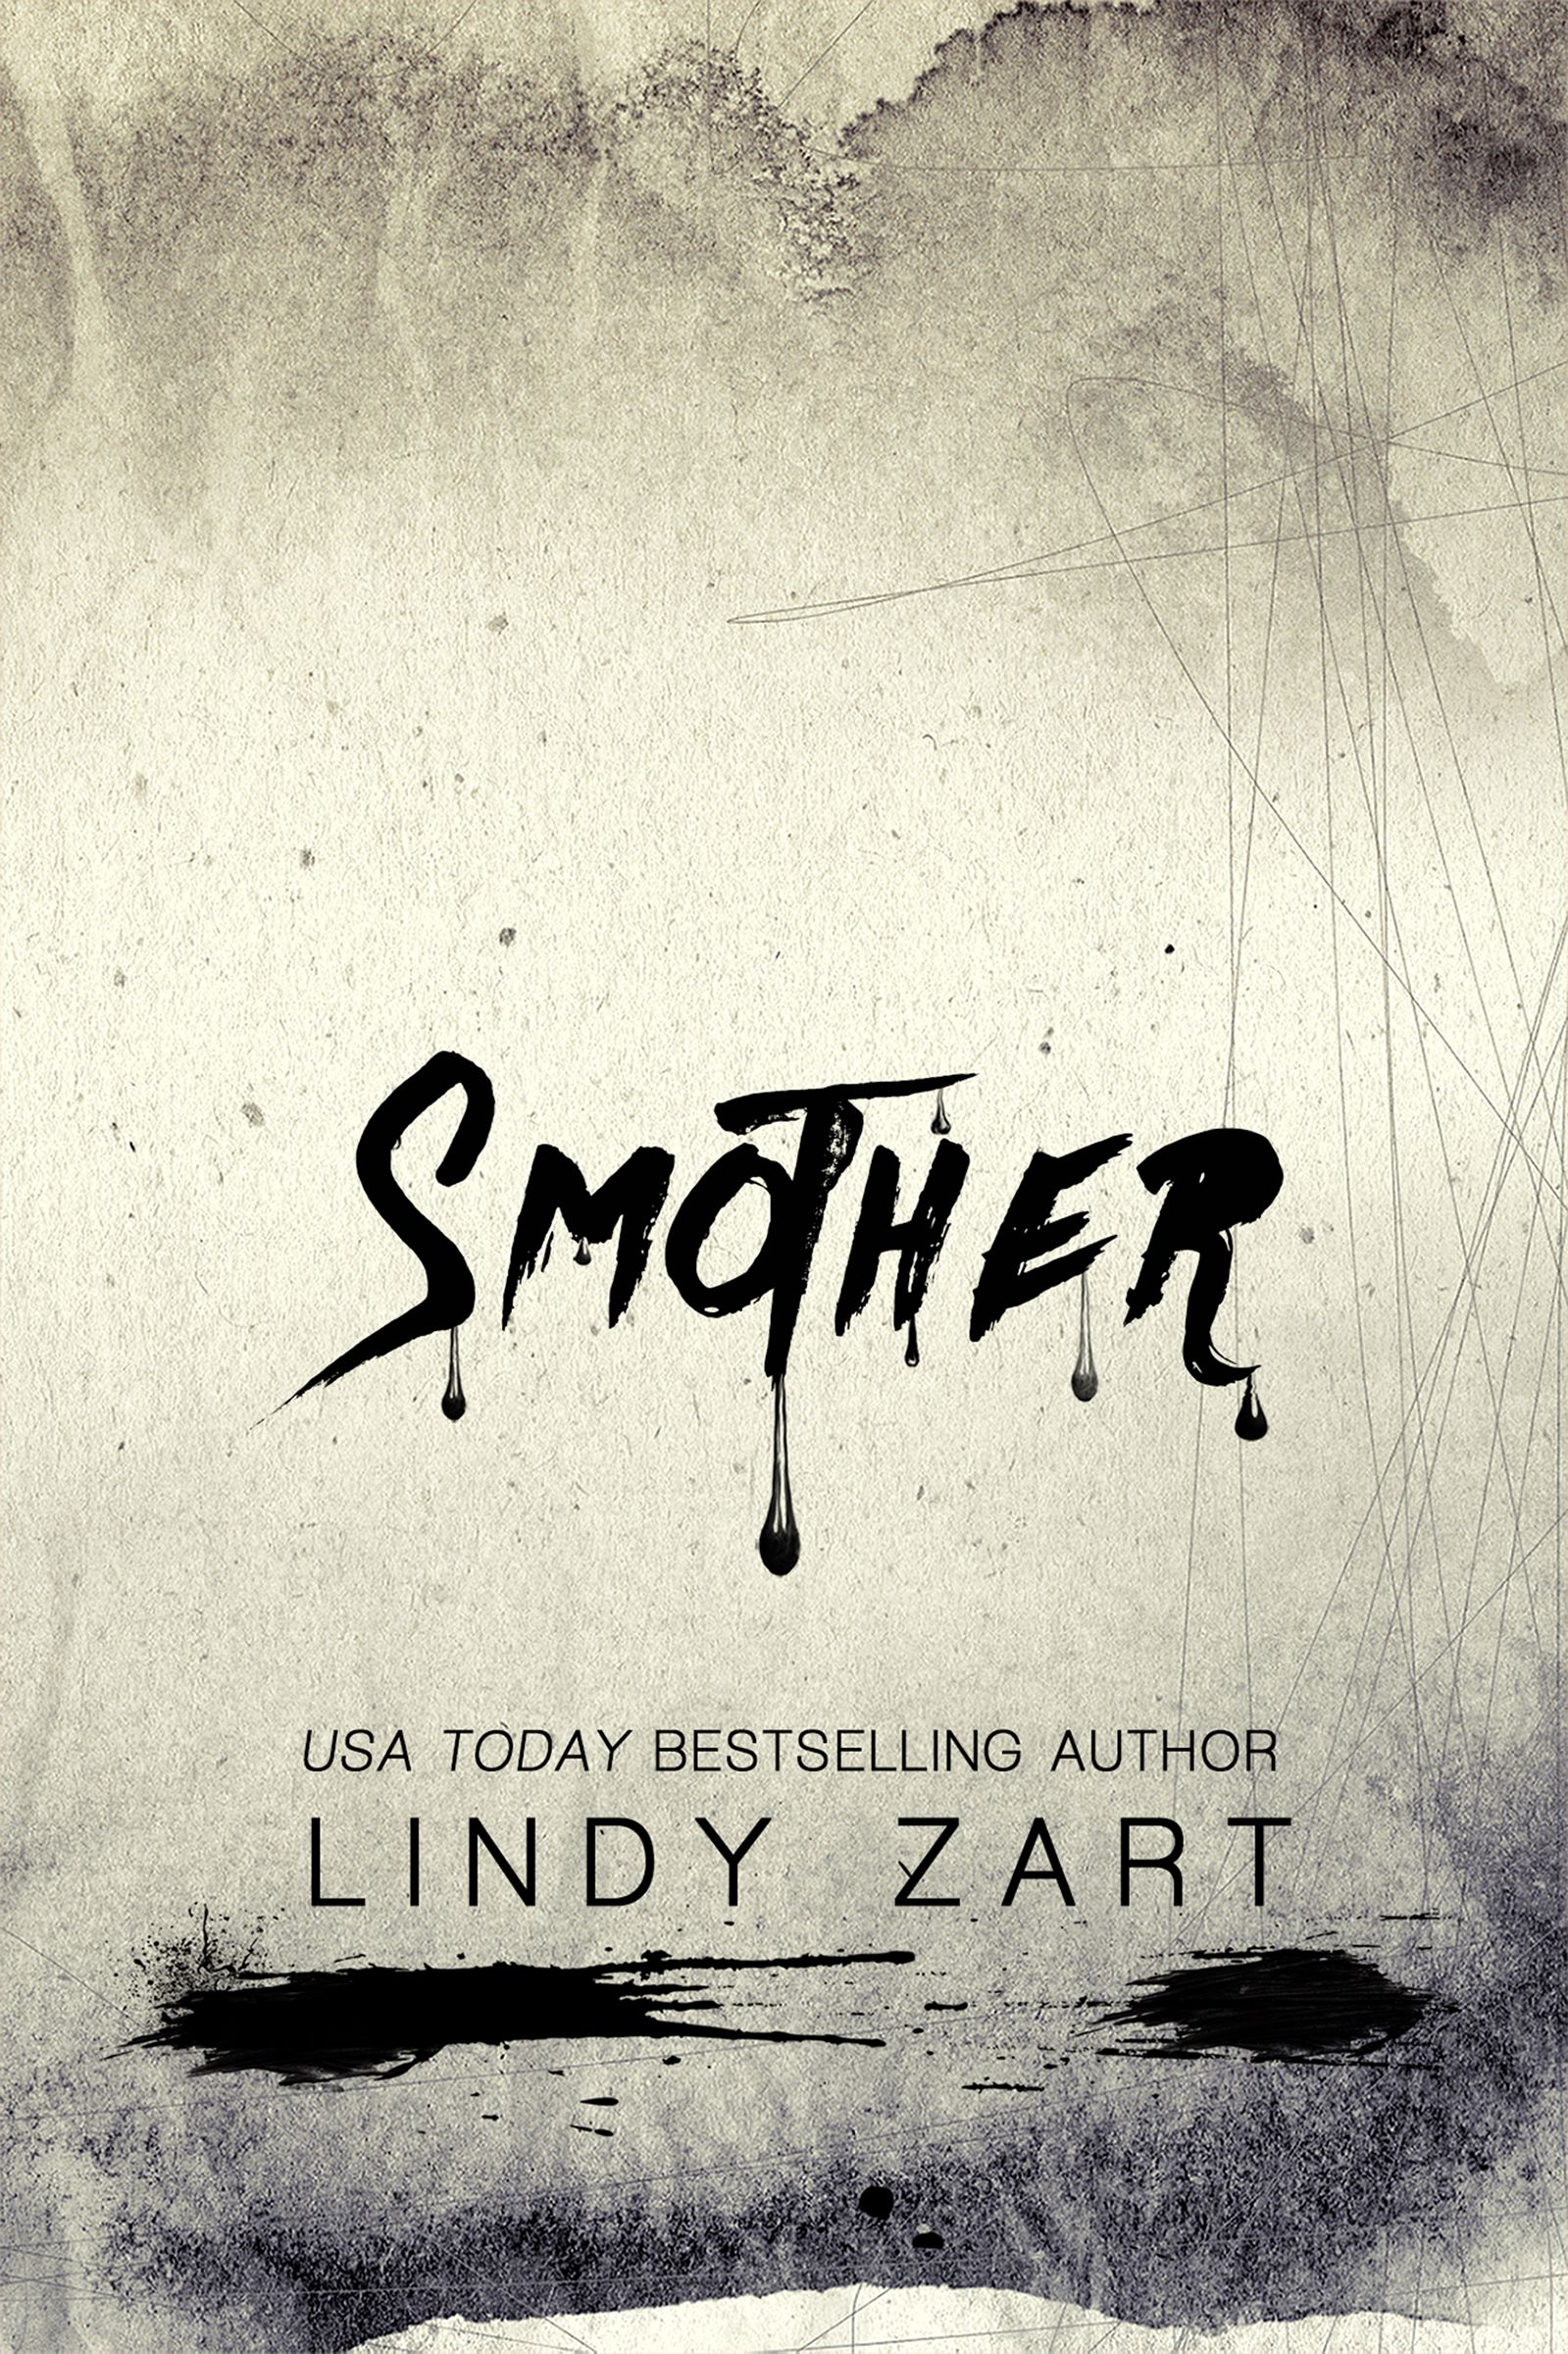 Smother - Lindy Zart | Published by Self-Published | Release Date May 21st, 2015 | Genres: Dark Romance, Mystery/Suspense, New Adult Romance